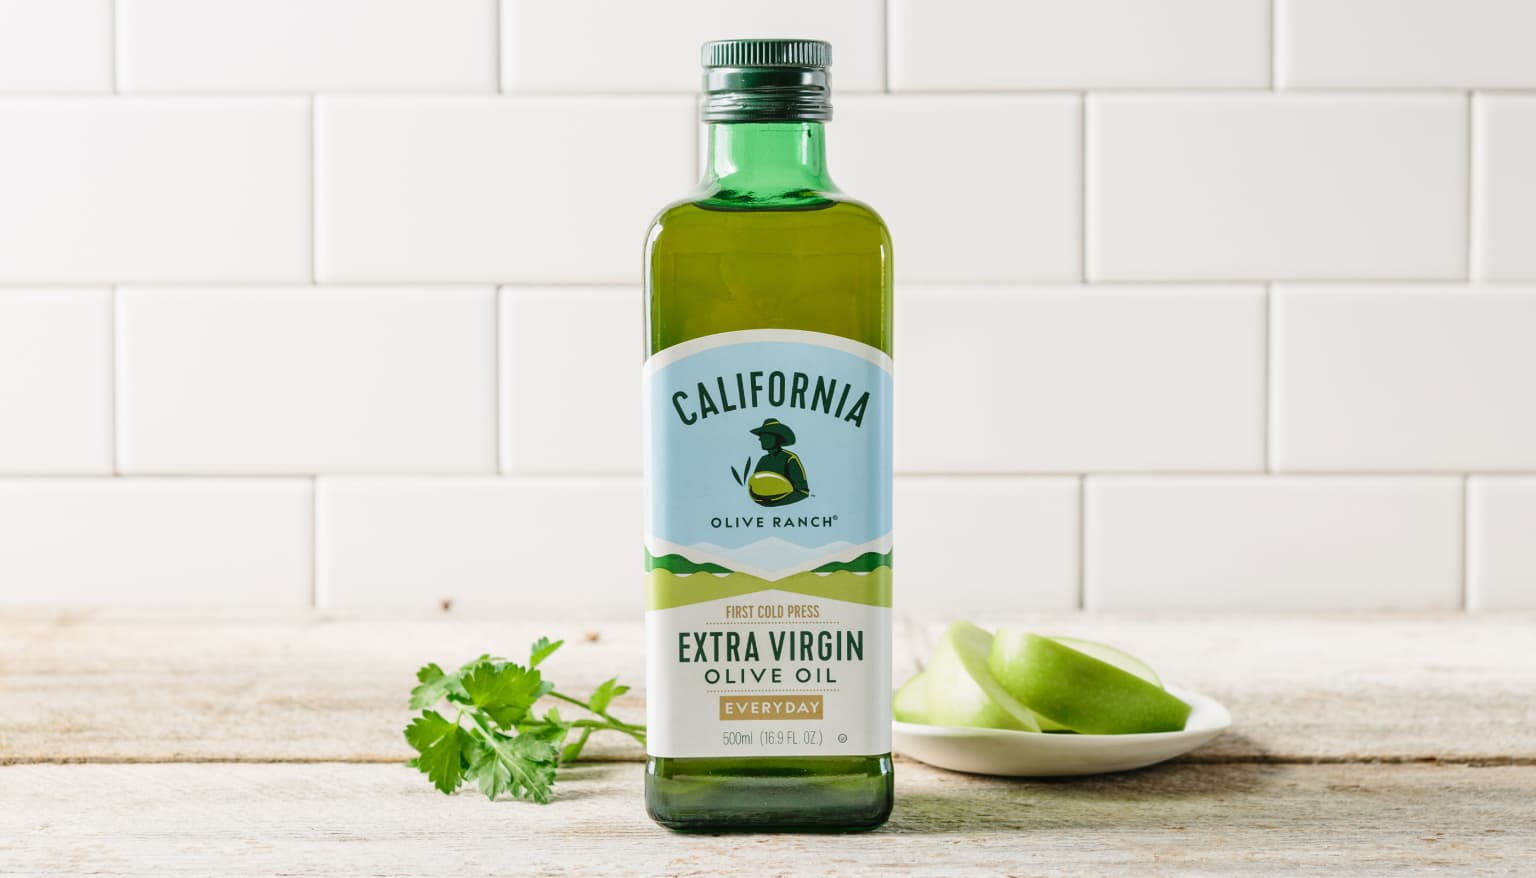 California Olive Ranch Branding & Packaging Redesign